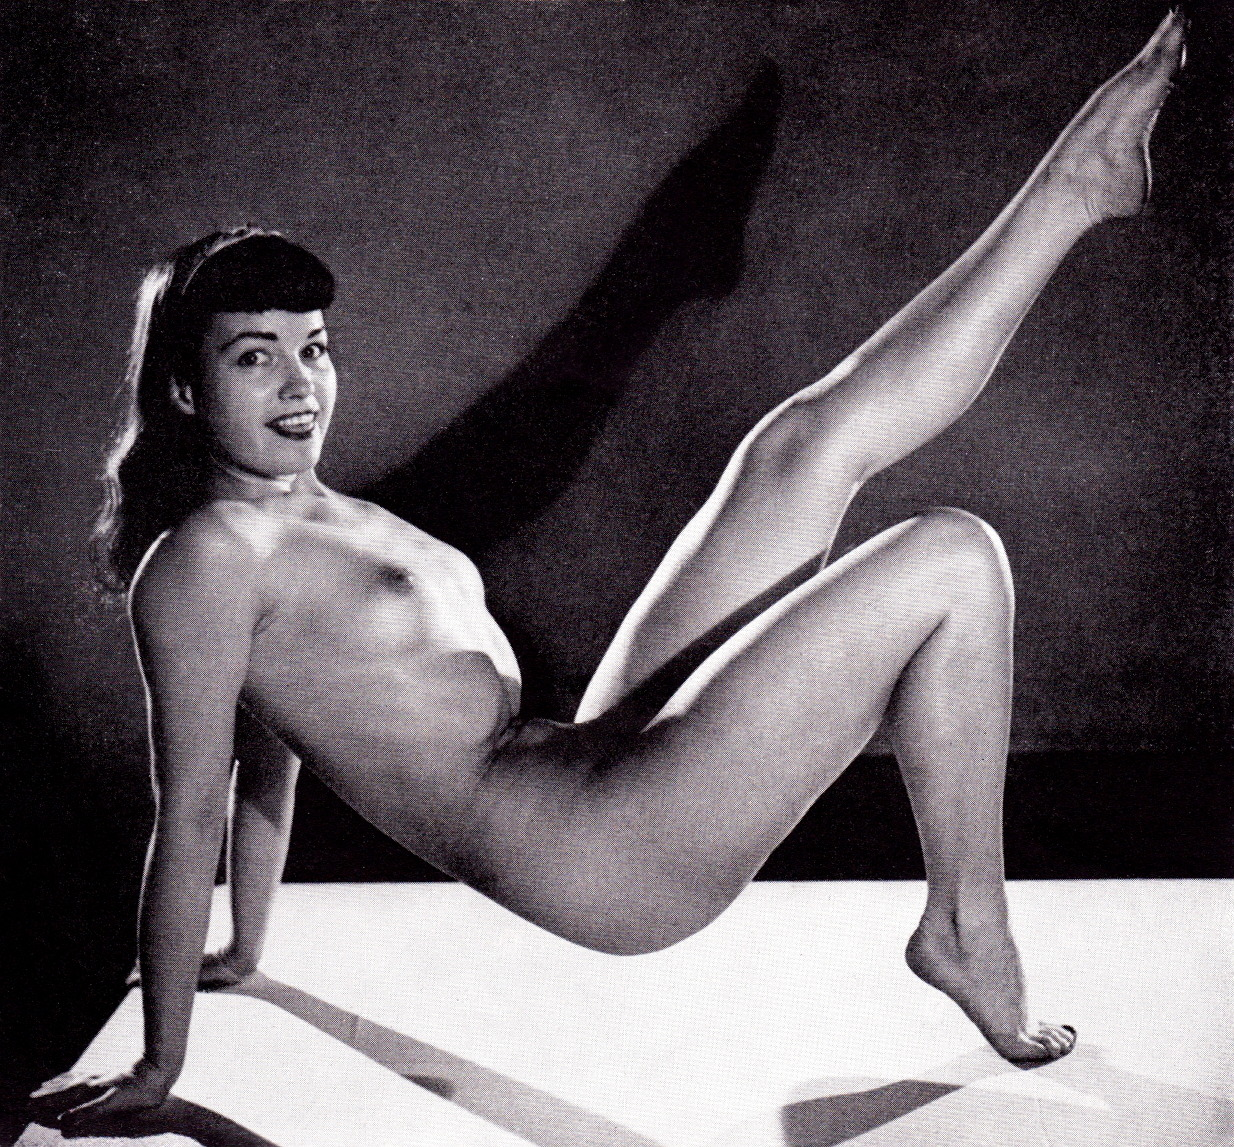 Nudes of betty page sex photo